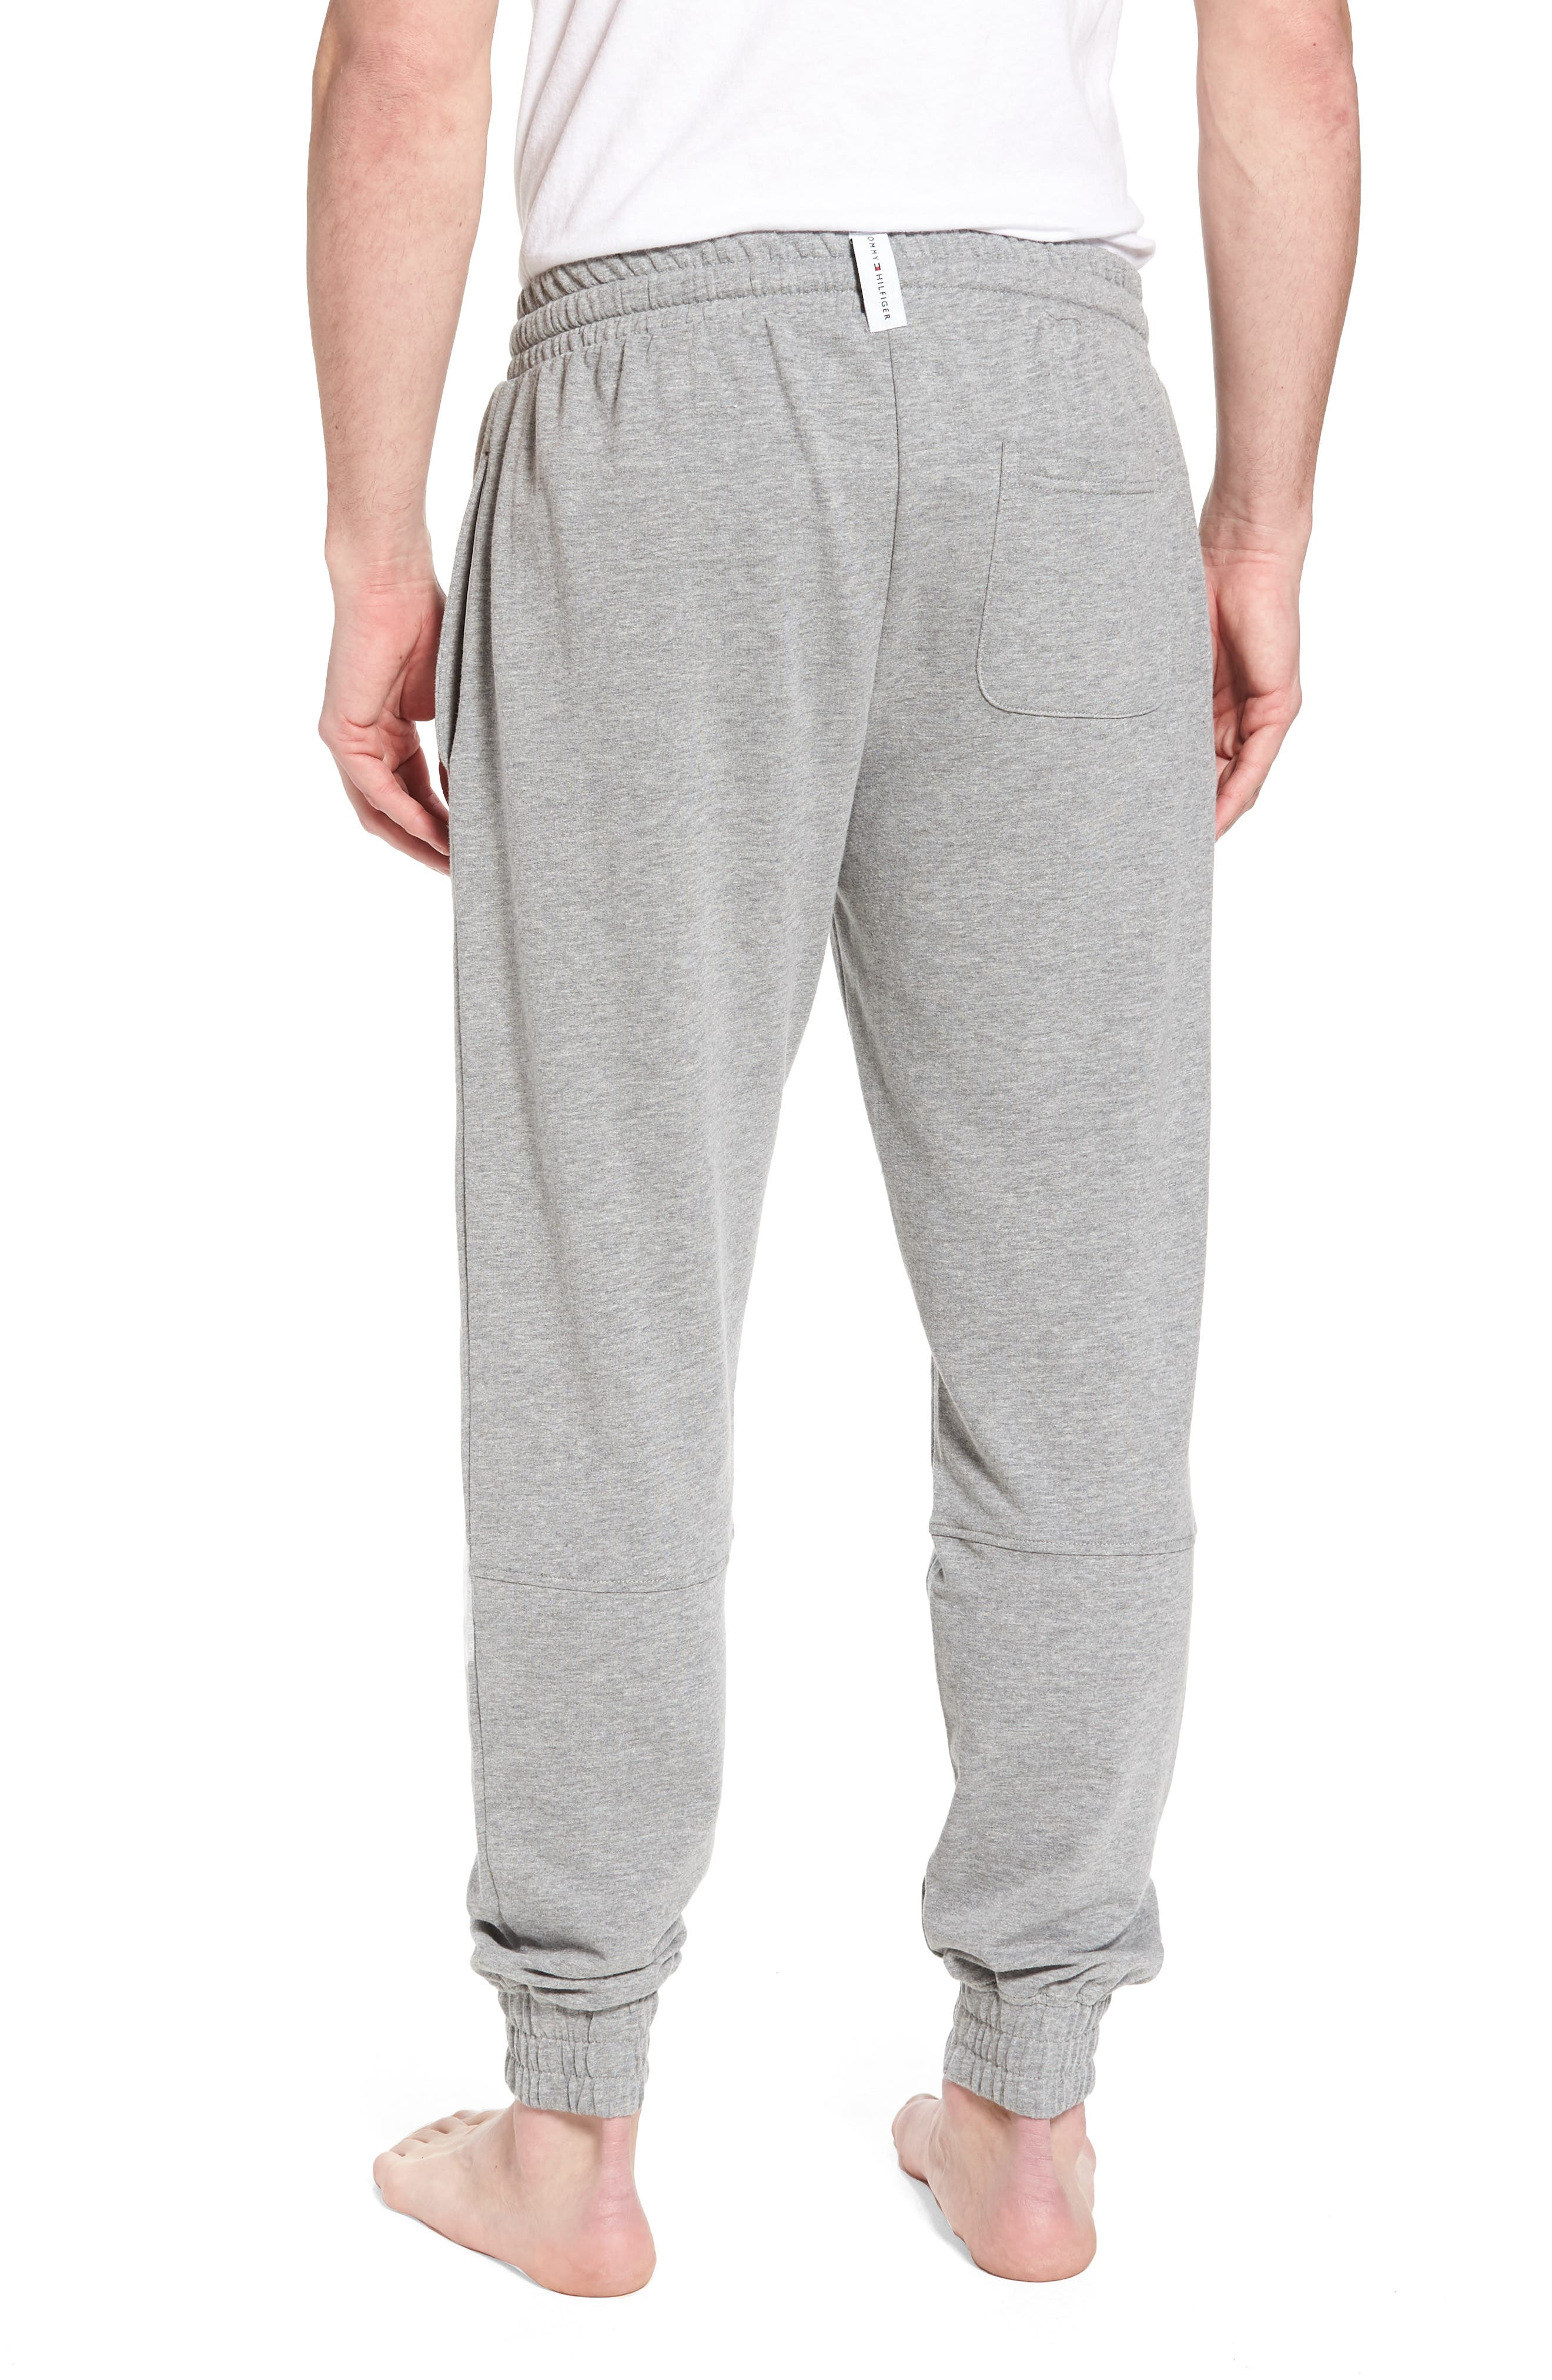 Jogger Lounge Pants,                             Alternate thumbnail 2, color,                             Grey Heather